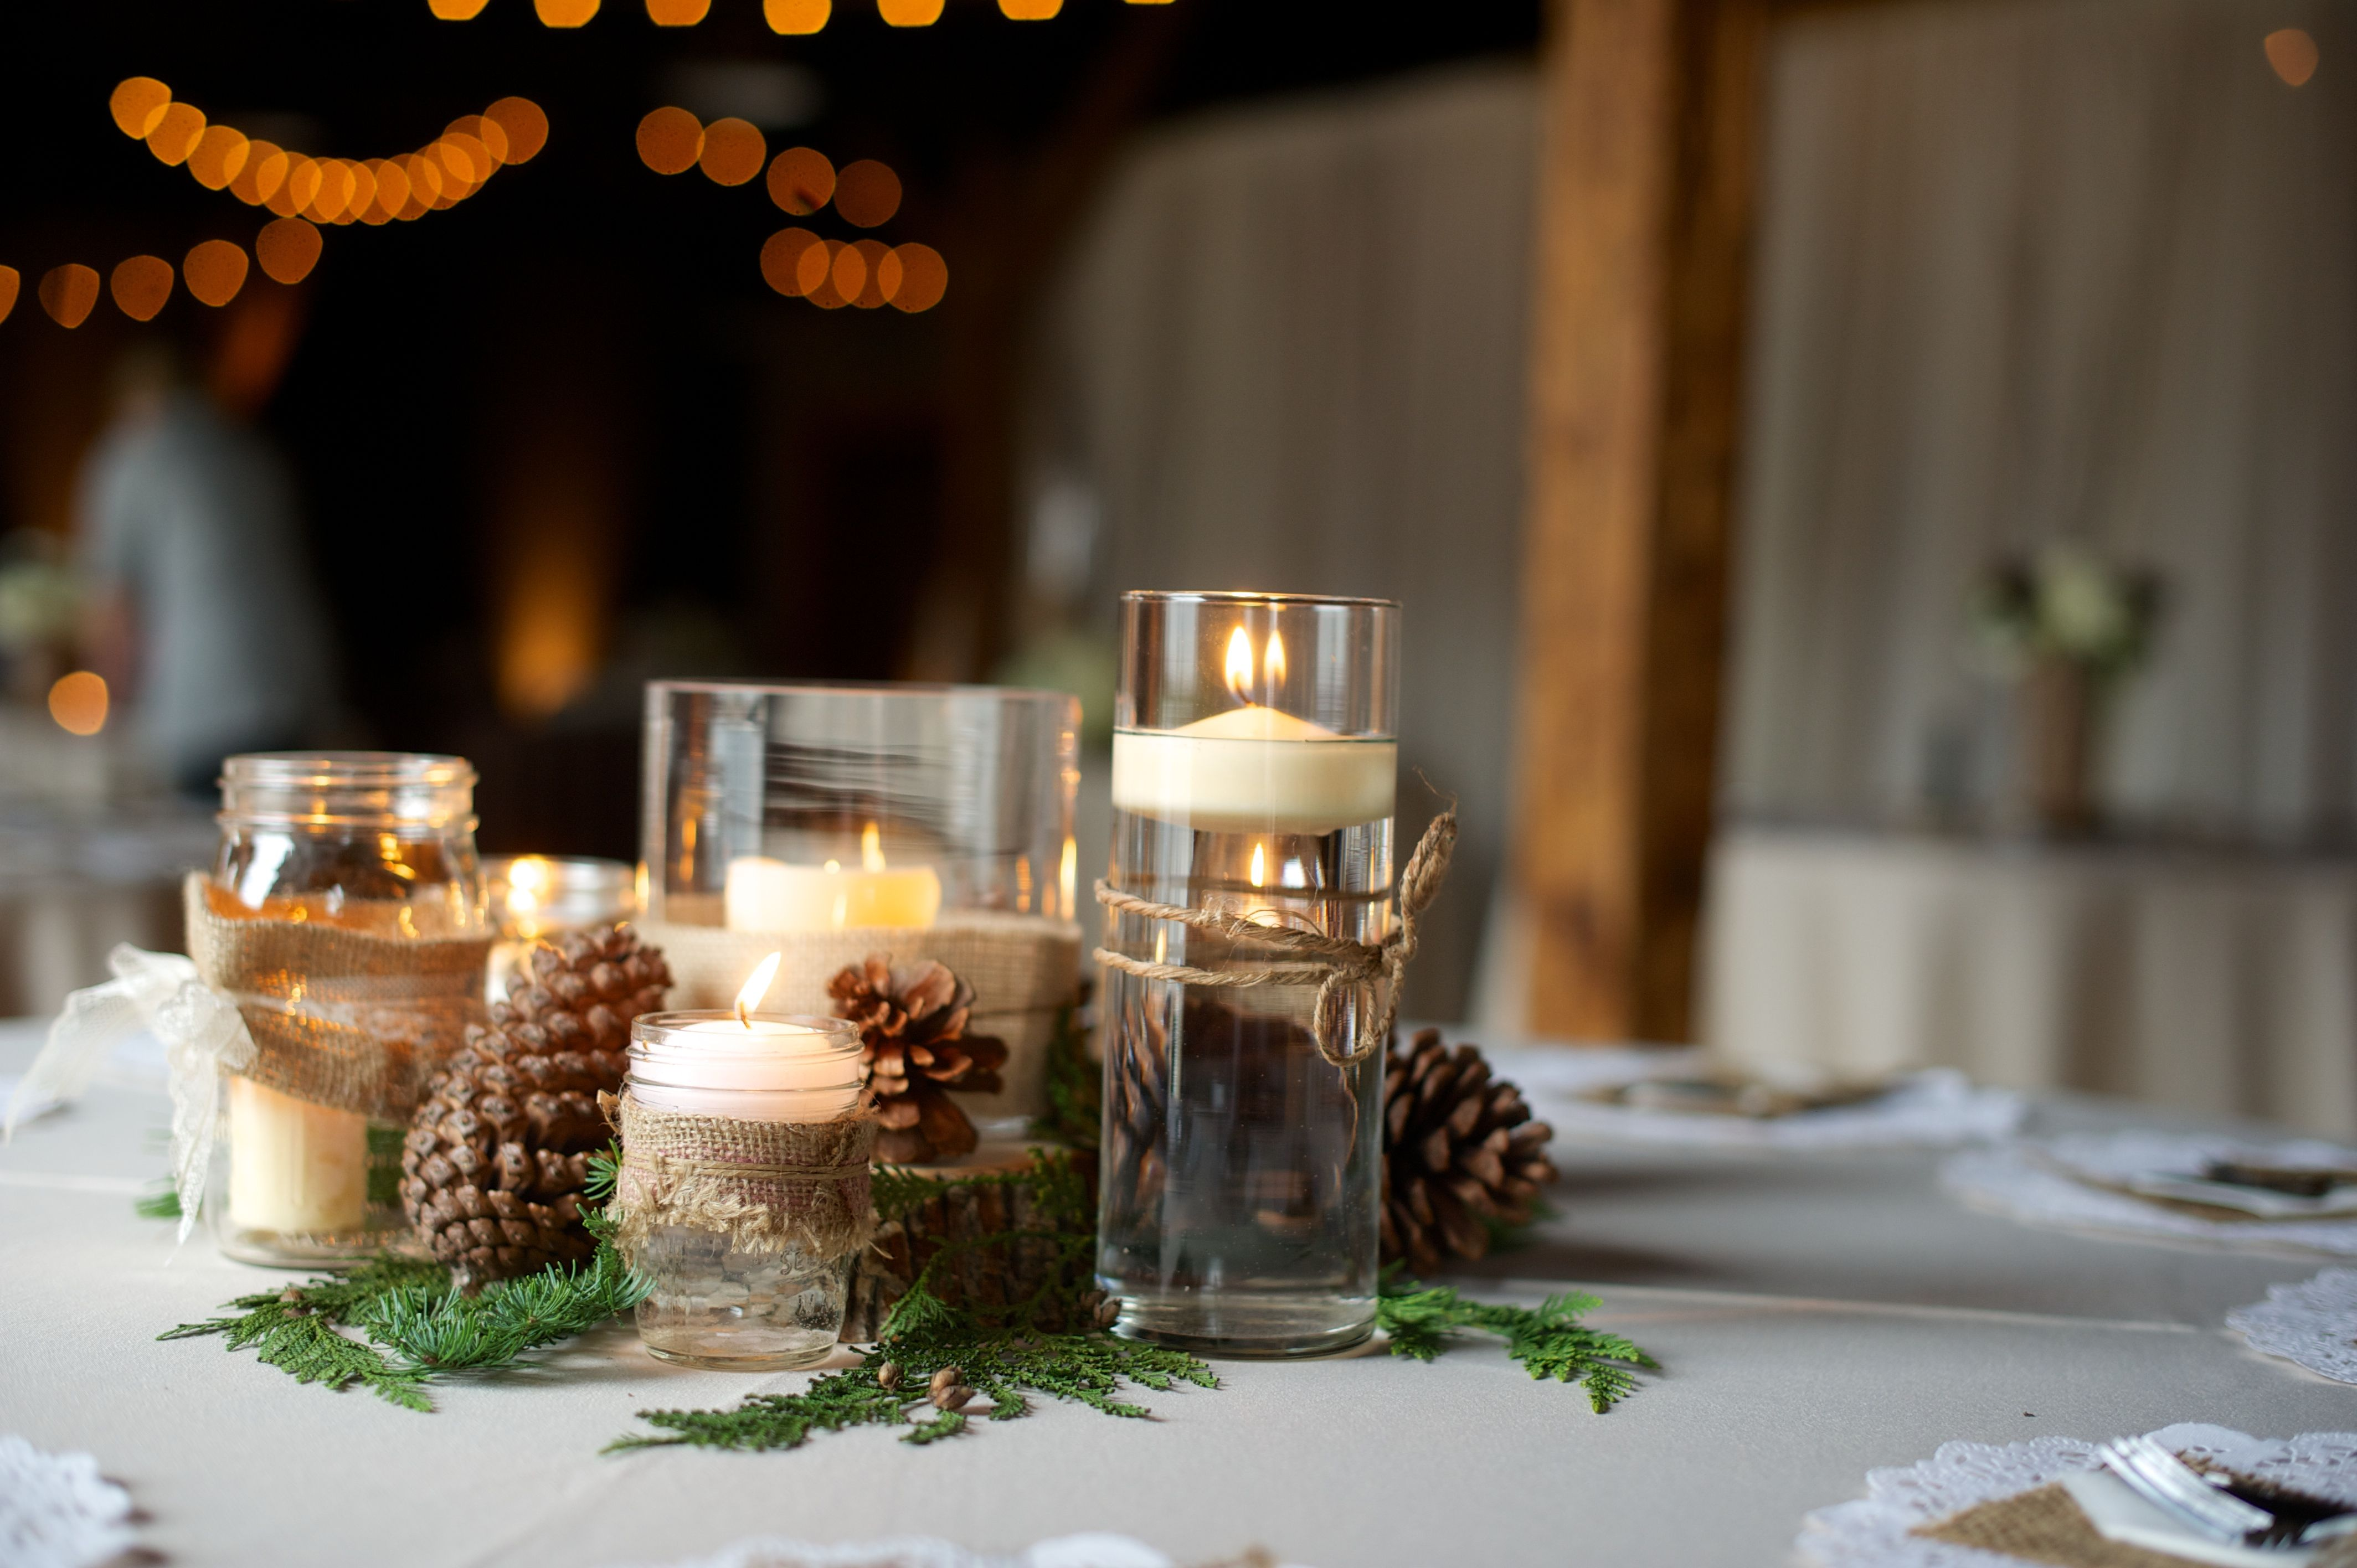 These Pinecone And Burlap Arrangements Create The Warm Rustic